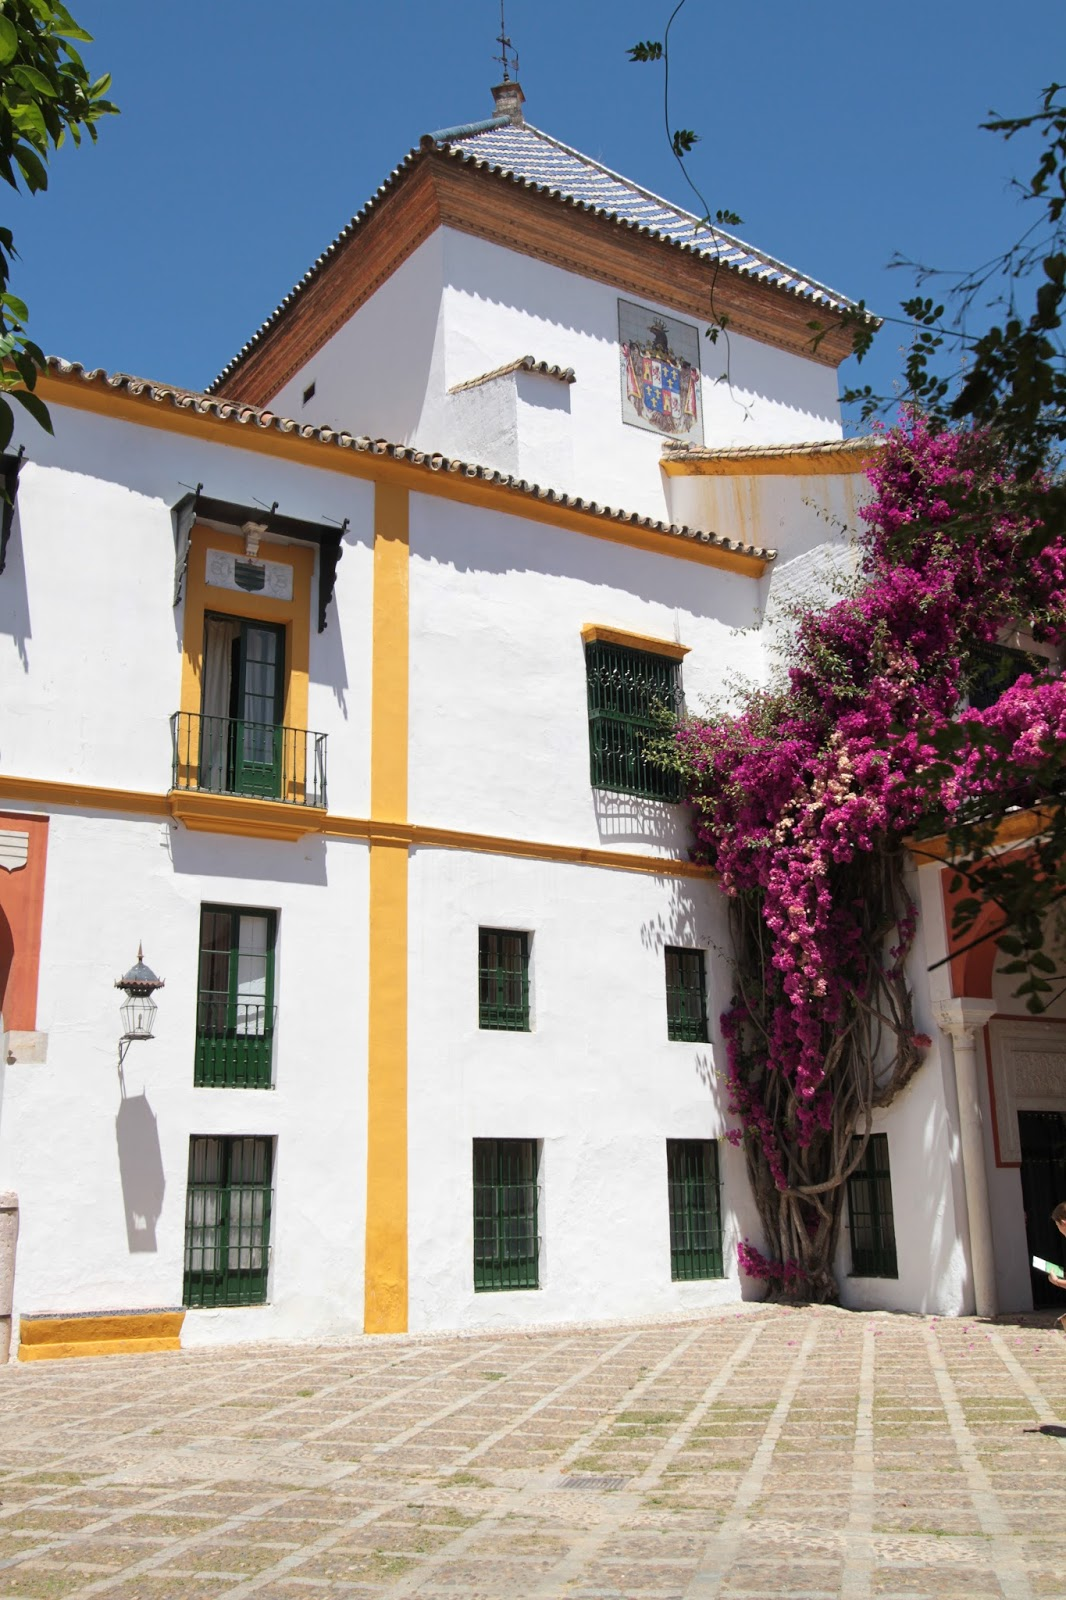 Casa de Pilates in Seville, Spain